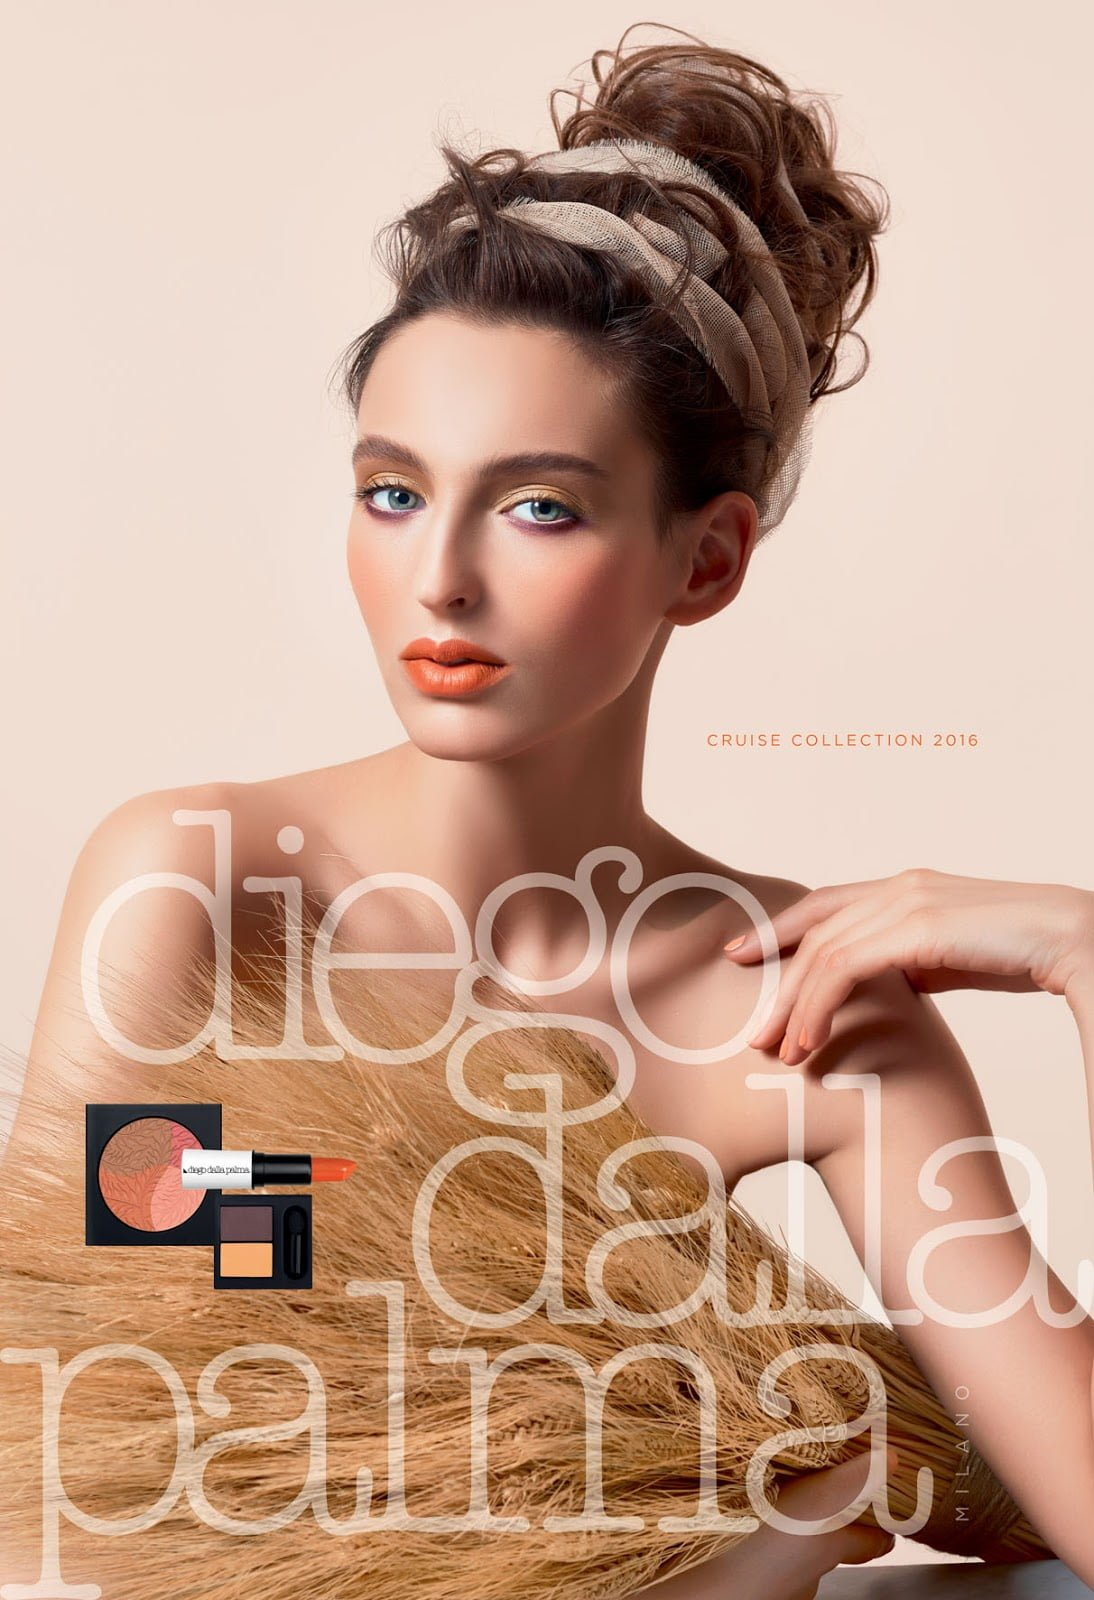 Campagna Cruise Collection Diego Dalla Palma